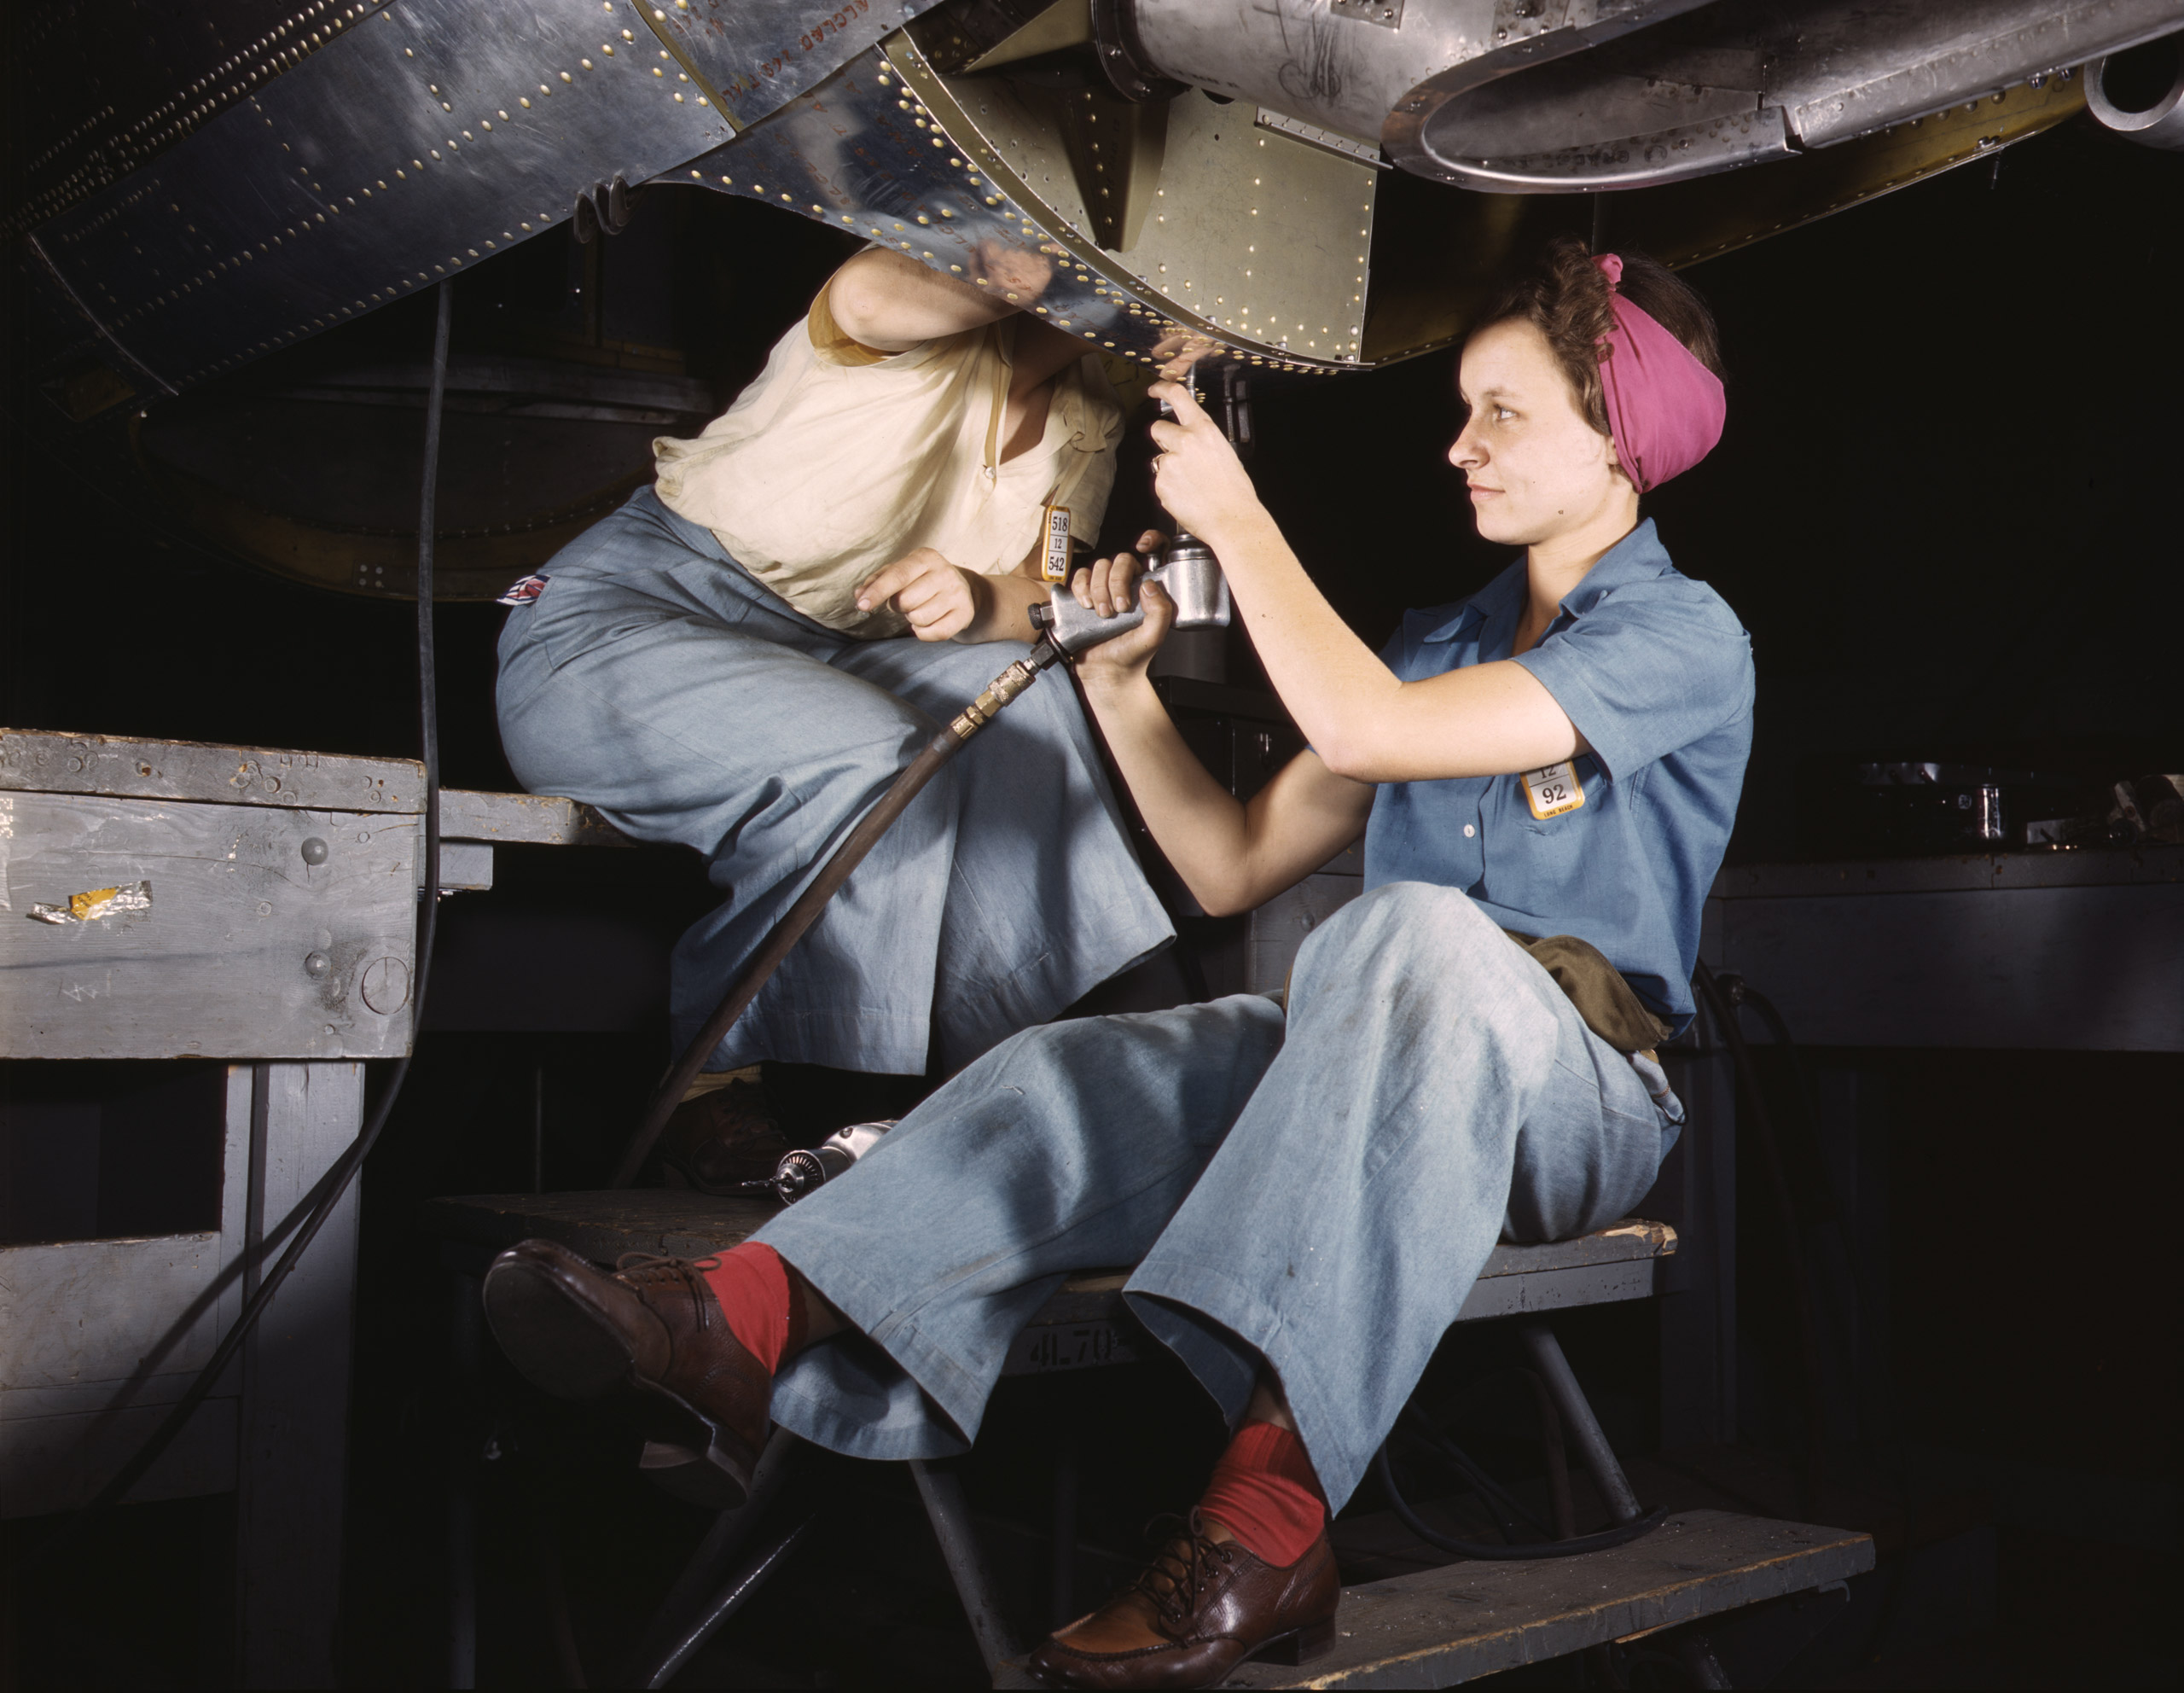 Women at work on C-47 Douglas cargo transport, Douglas Aircraft Company, Long Beach, Calif, October 1942. Photographed by Alfred T. Palmer for the Farm Security Administration.